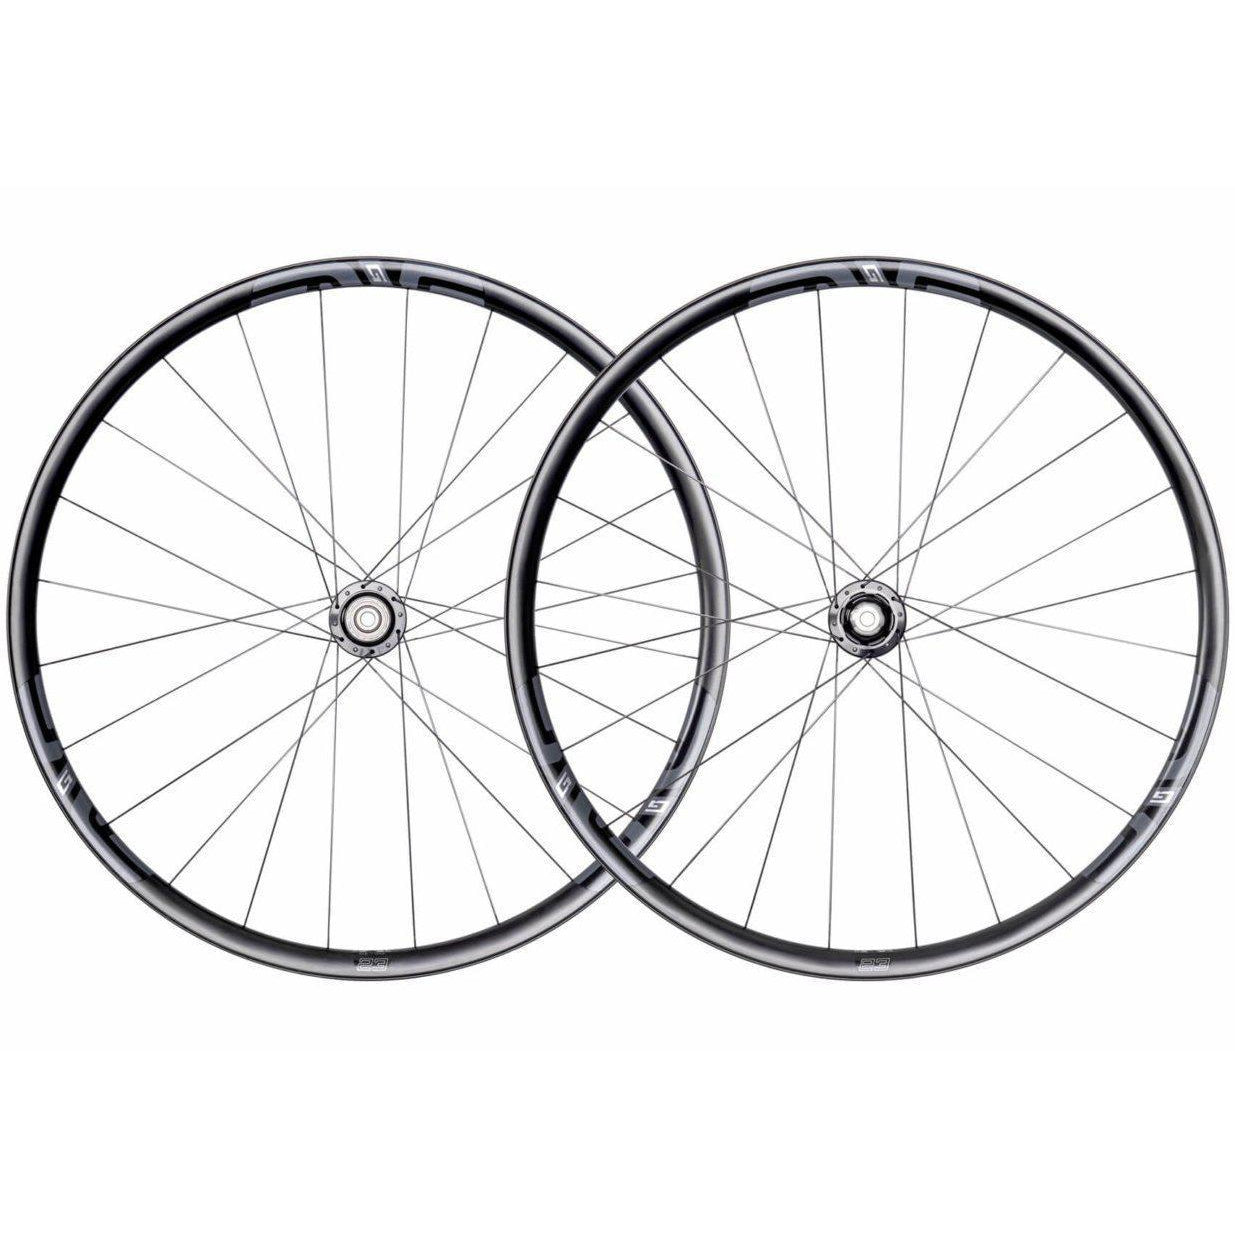 Enve G23 700c Gravel Wheelset - Centerlock Disc Brake